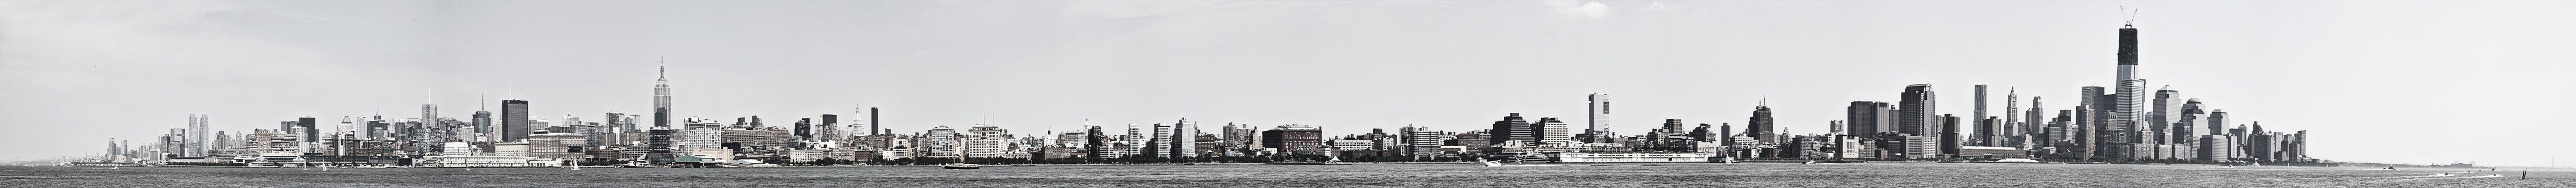 Big Apple Pano